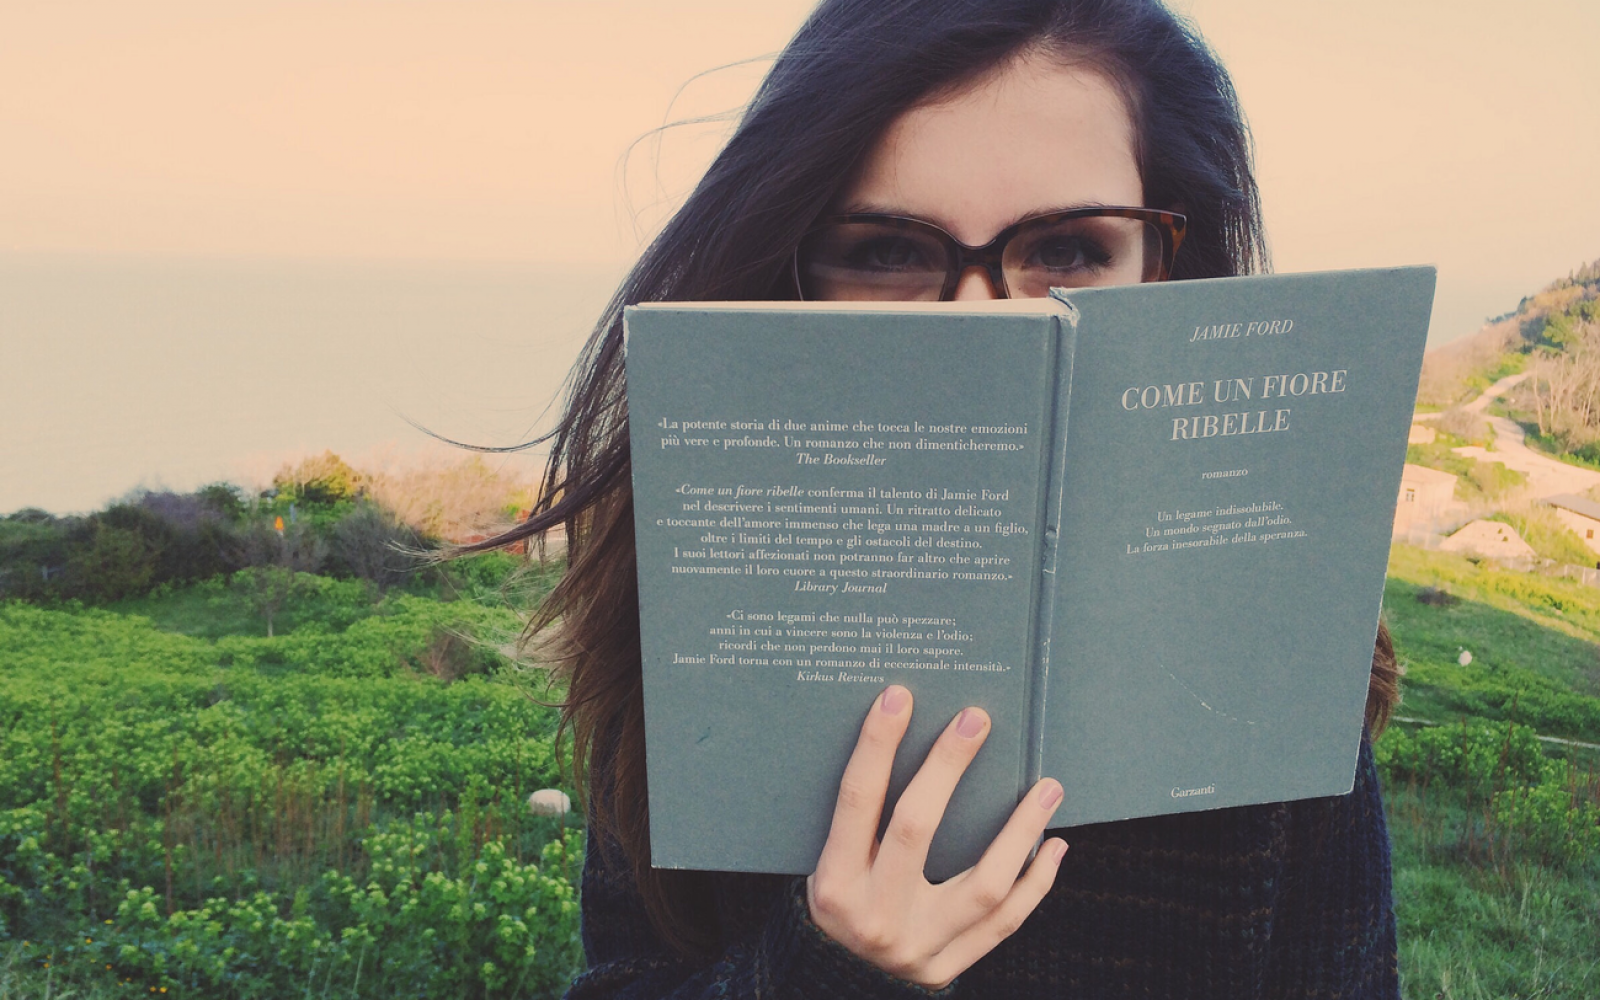 22 Beautifully Profound Sentences In Literature You Can't Help But Reread